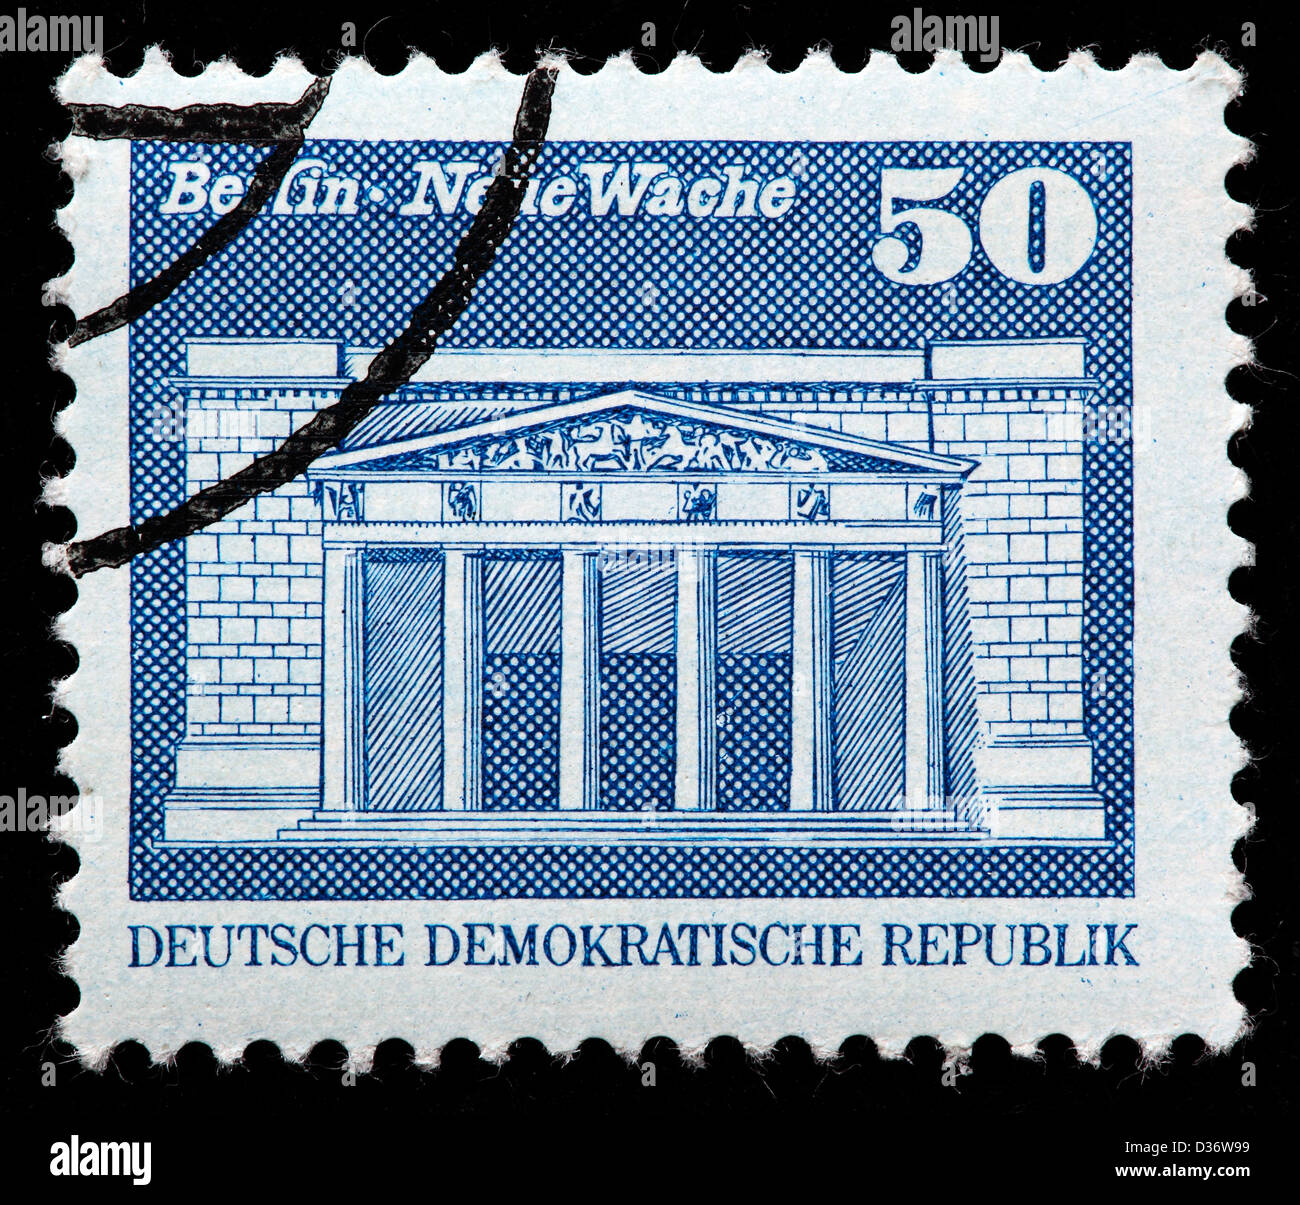 New Guardhouse, Berlin, postage stamp, Germany, 1973 - Stock Image